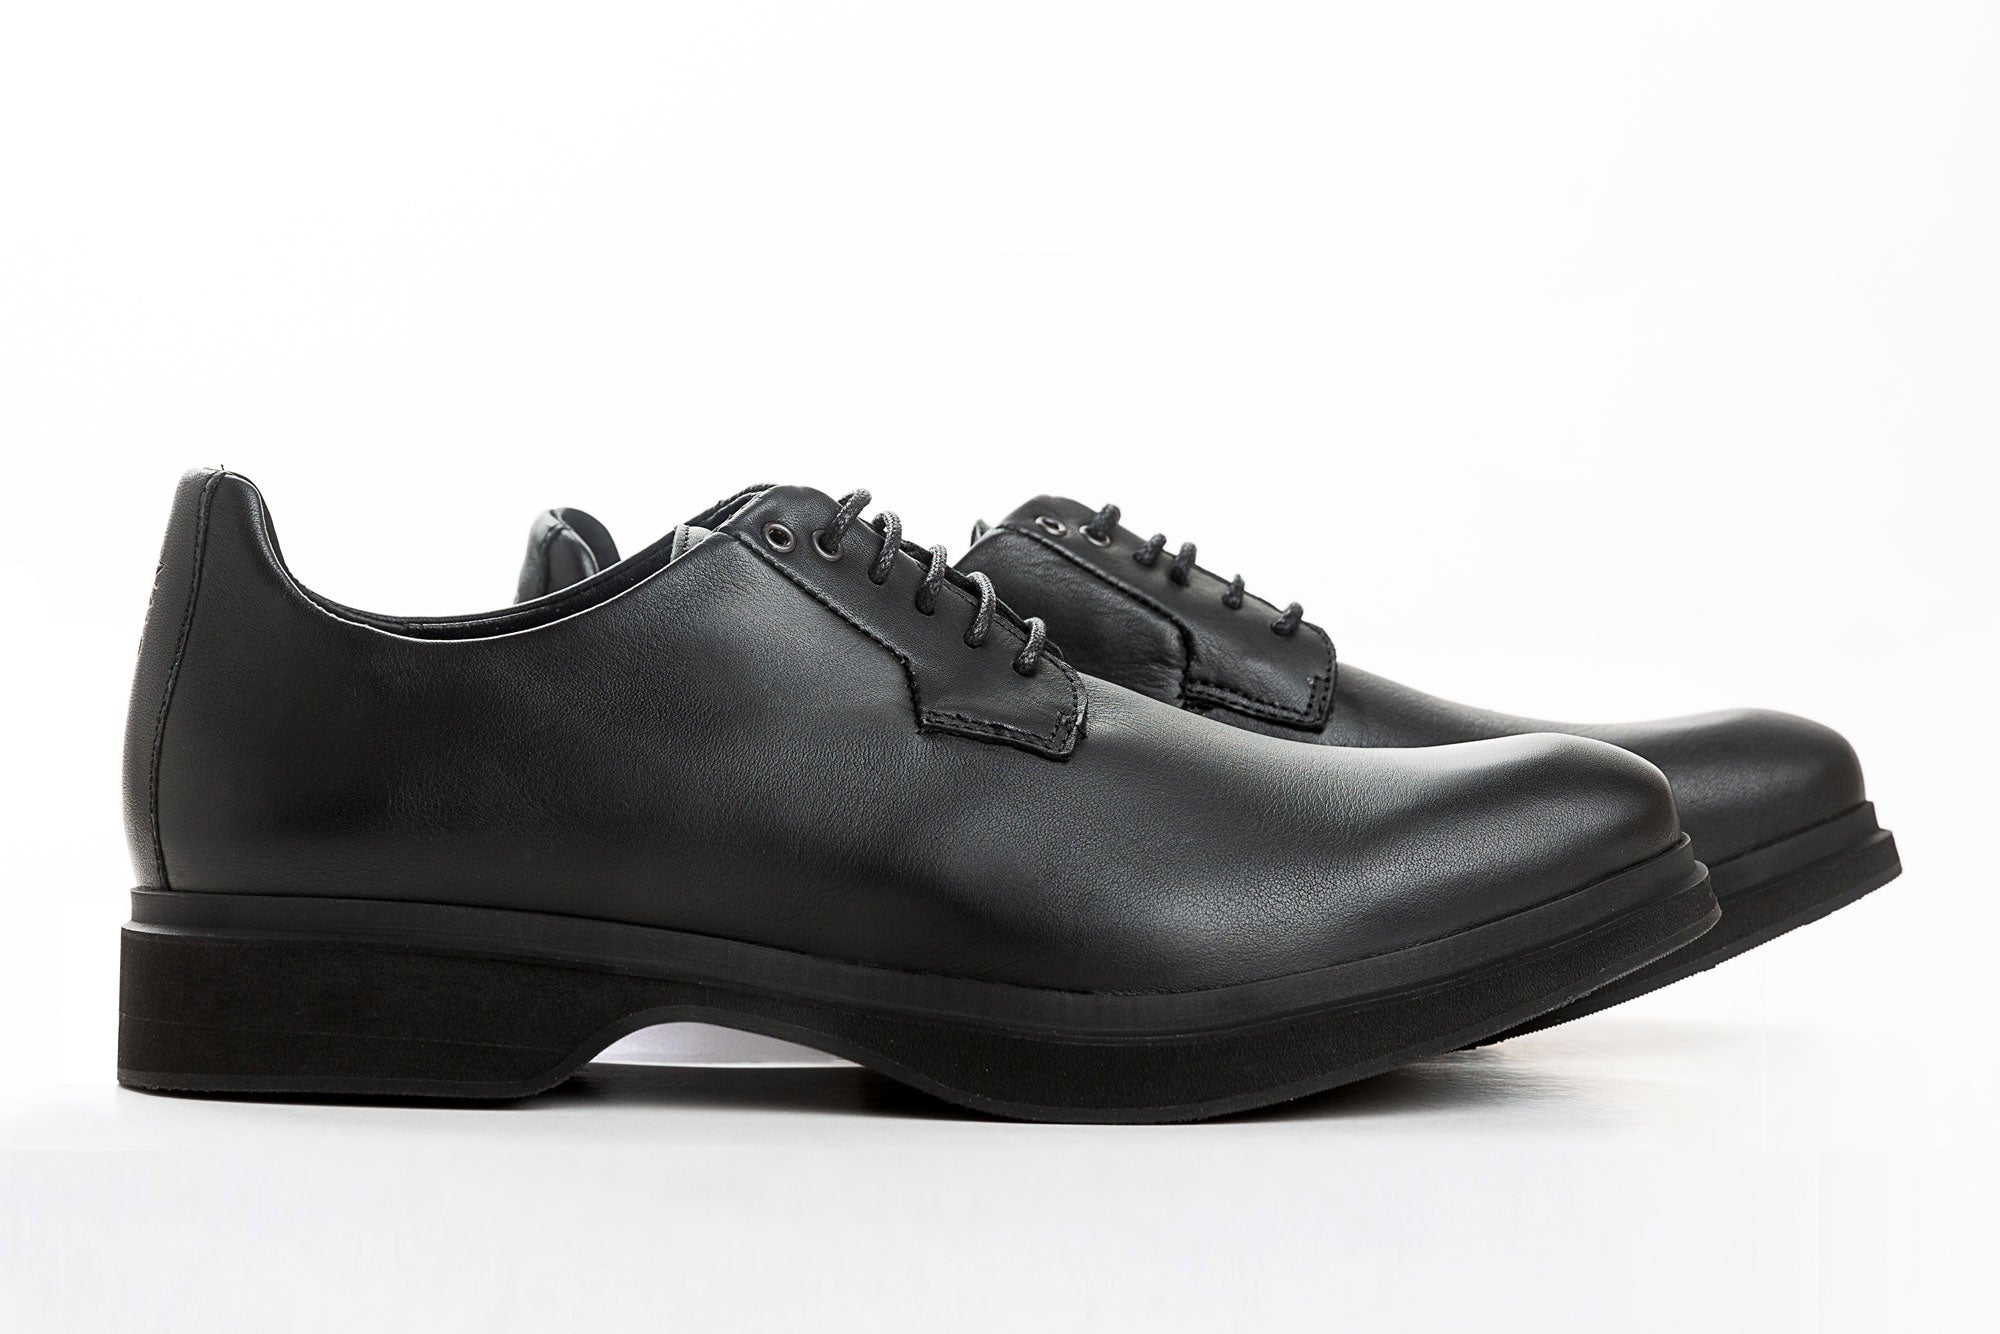 a3d4d8cda31 Most Comfortable Mens Dress Shoes For Work - MARATOWN - super cushioned sole  - most comfortable ...